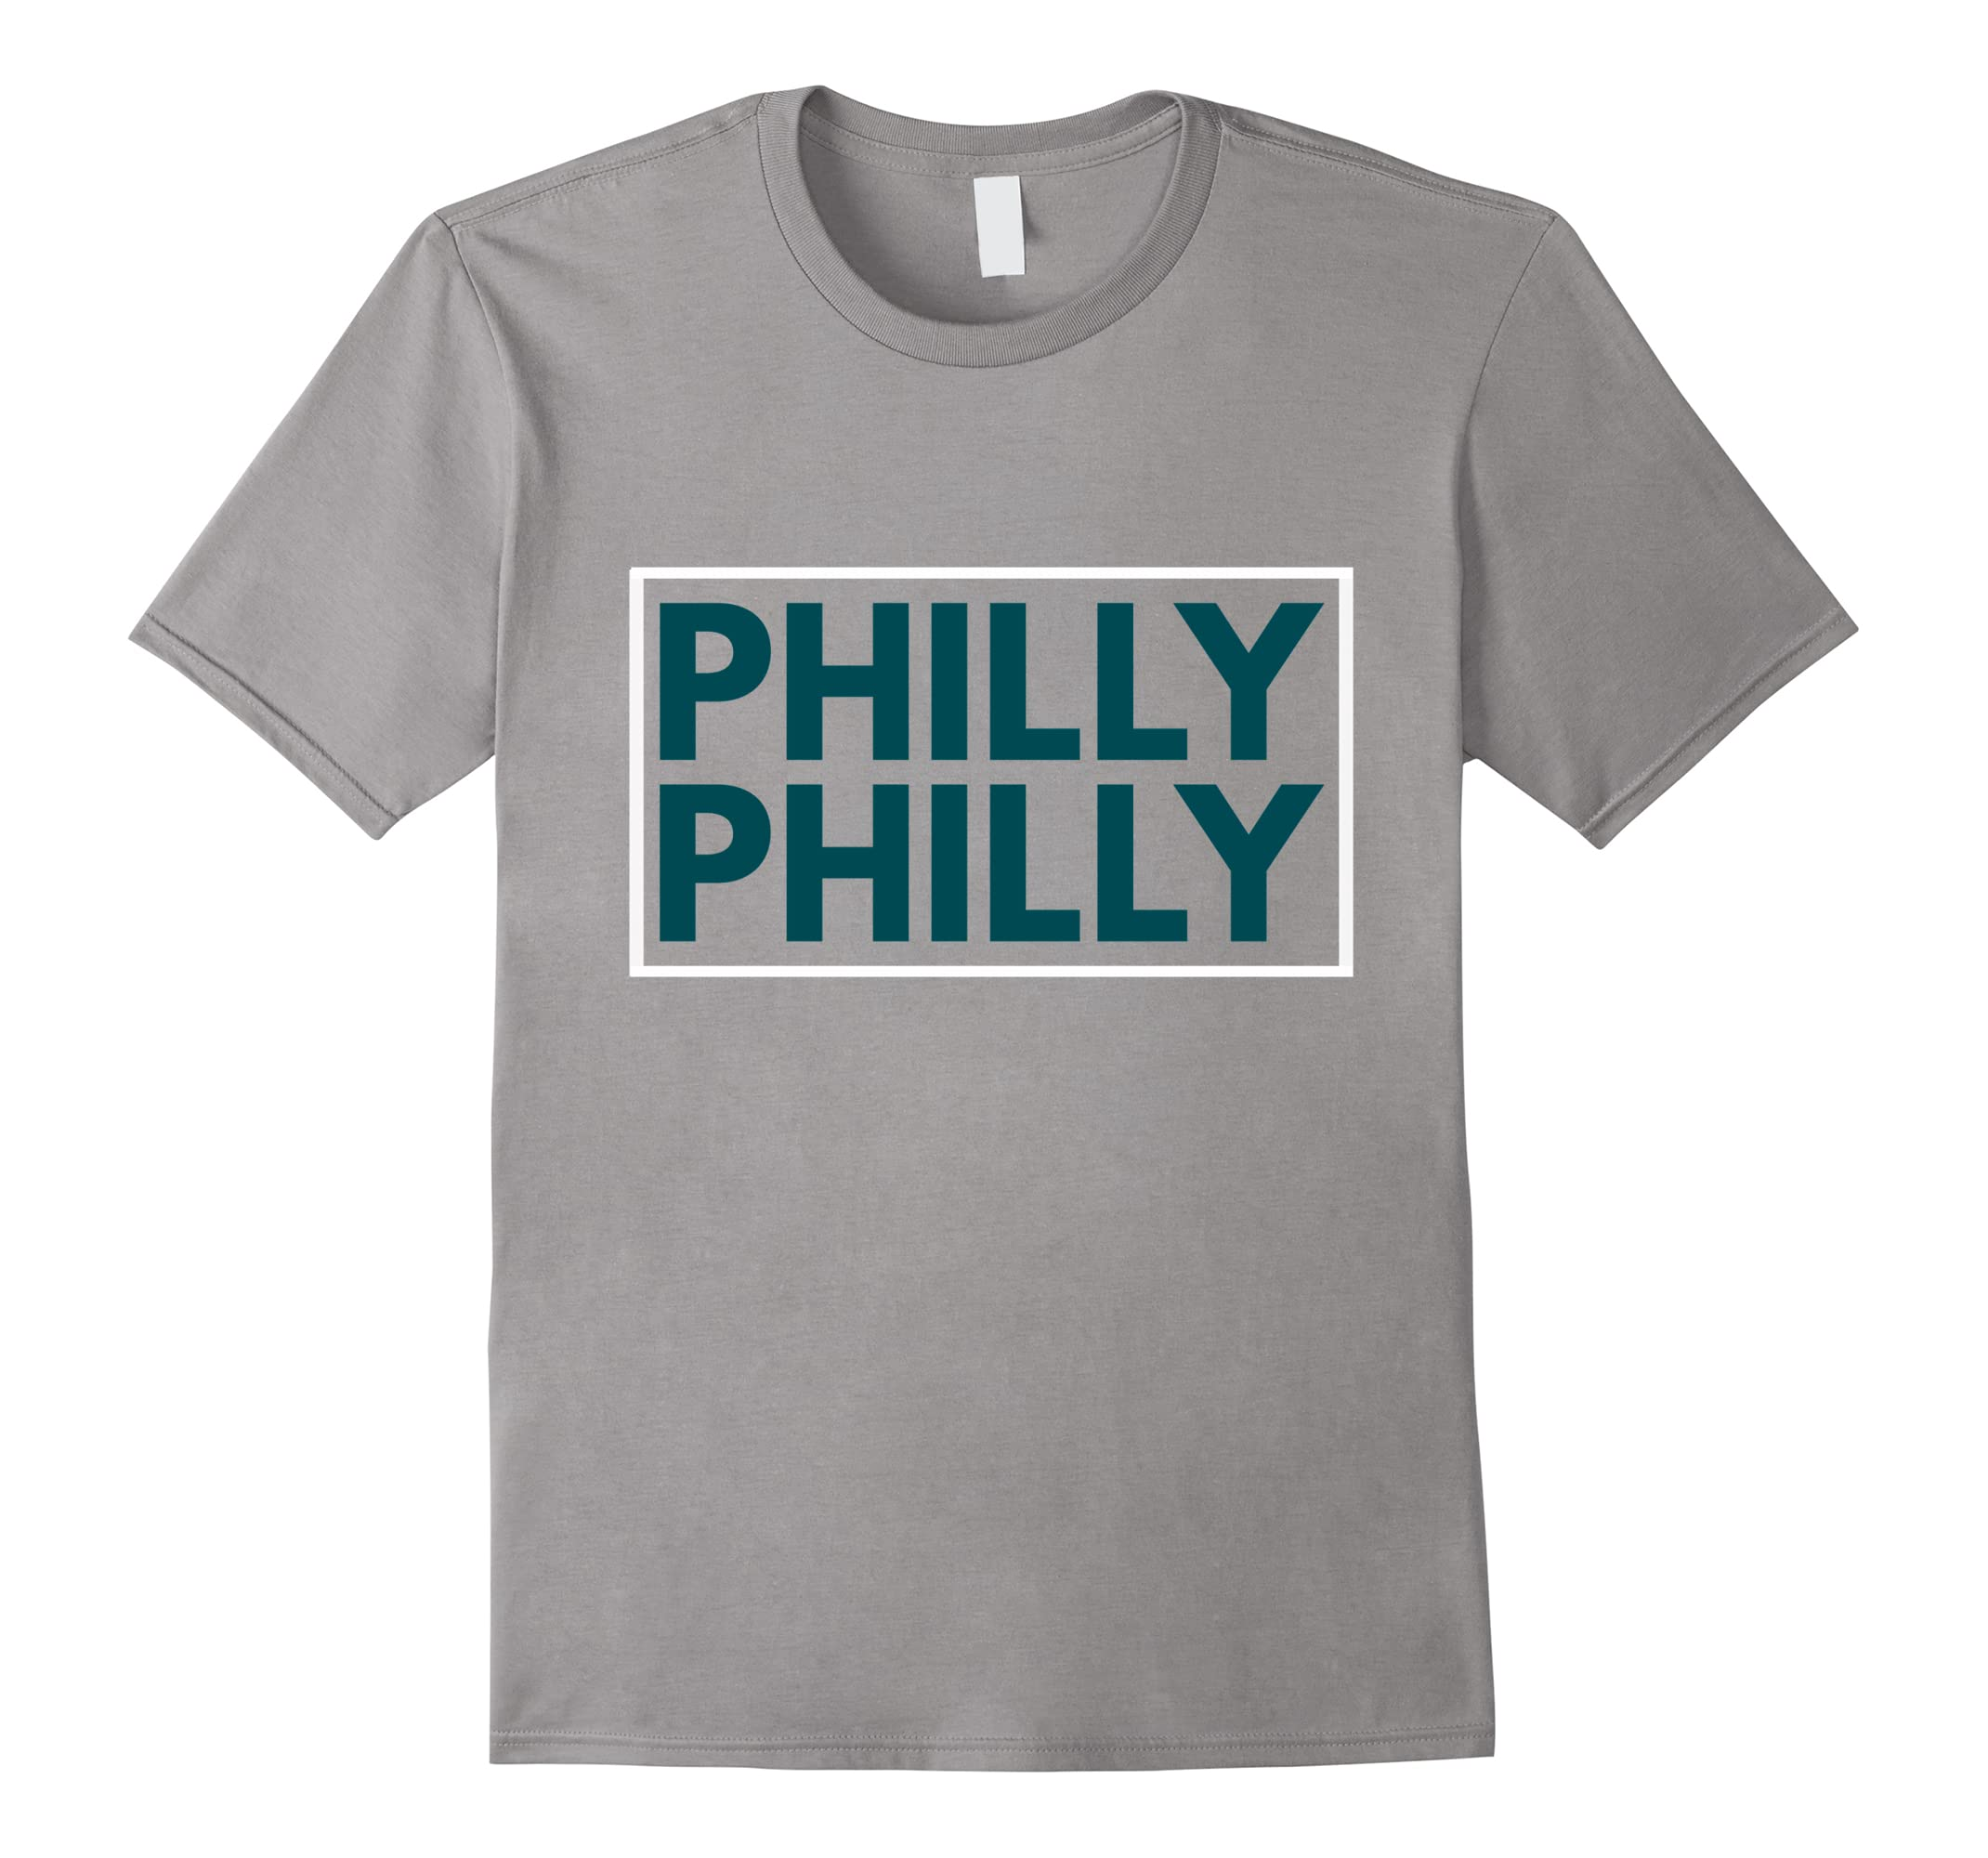 Philly Philly Shirt Philadelphia Apparel For Men & Women-ah my shirt one gift